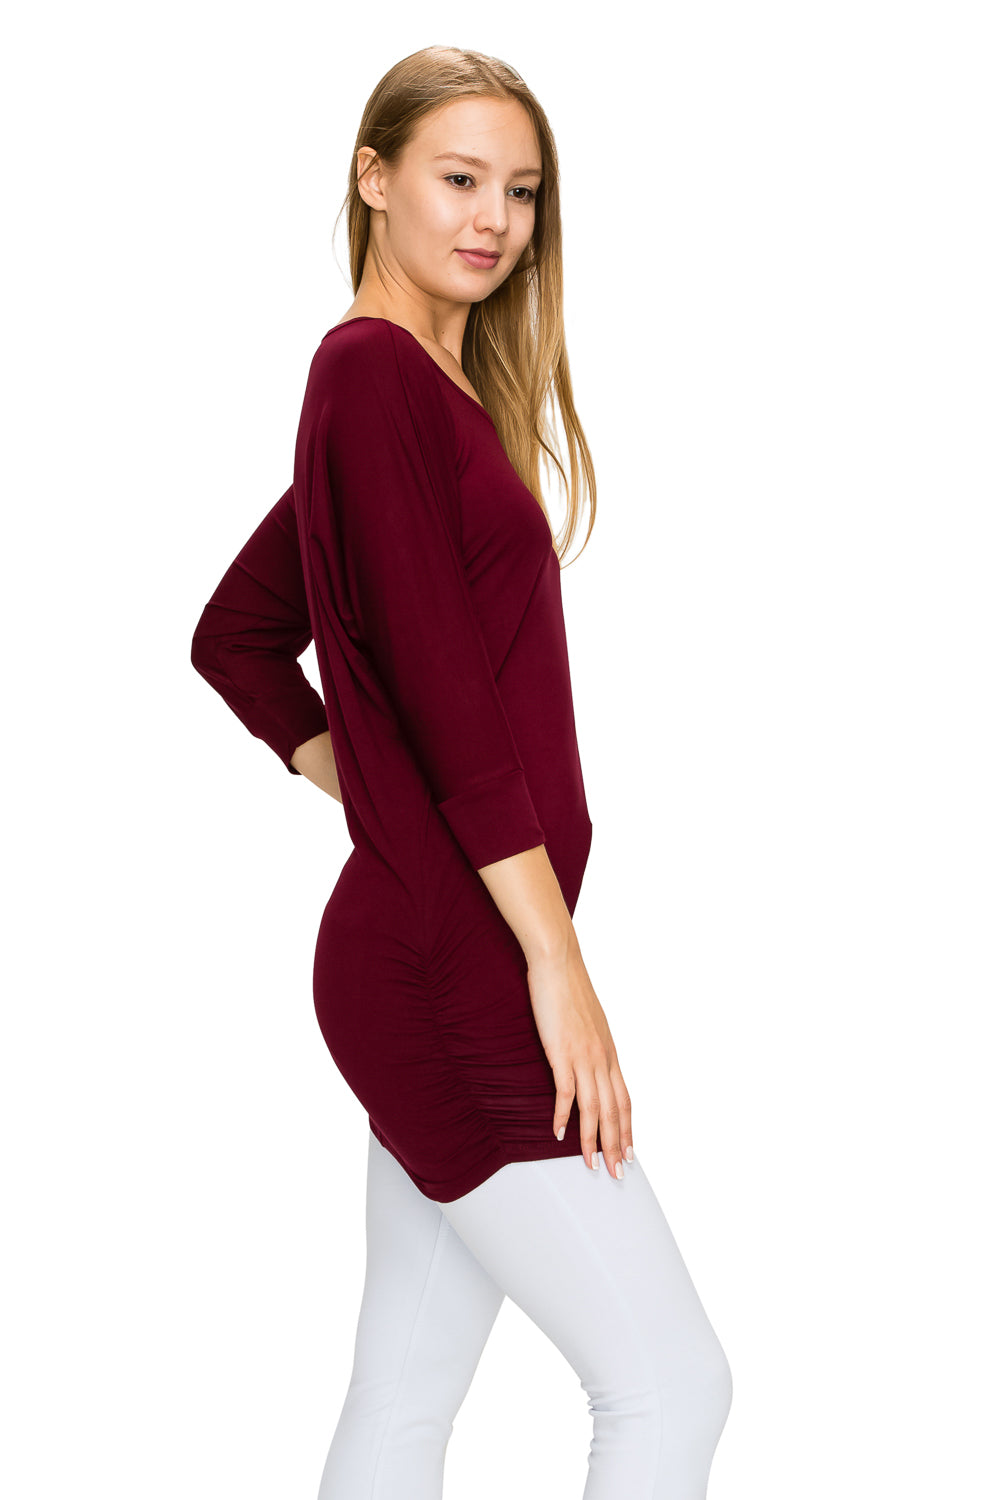 Burgundy 3/4 Sleeve Tunic Top - Poplooks